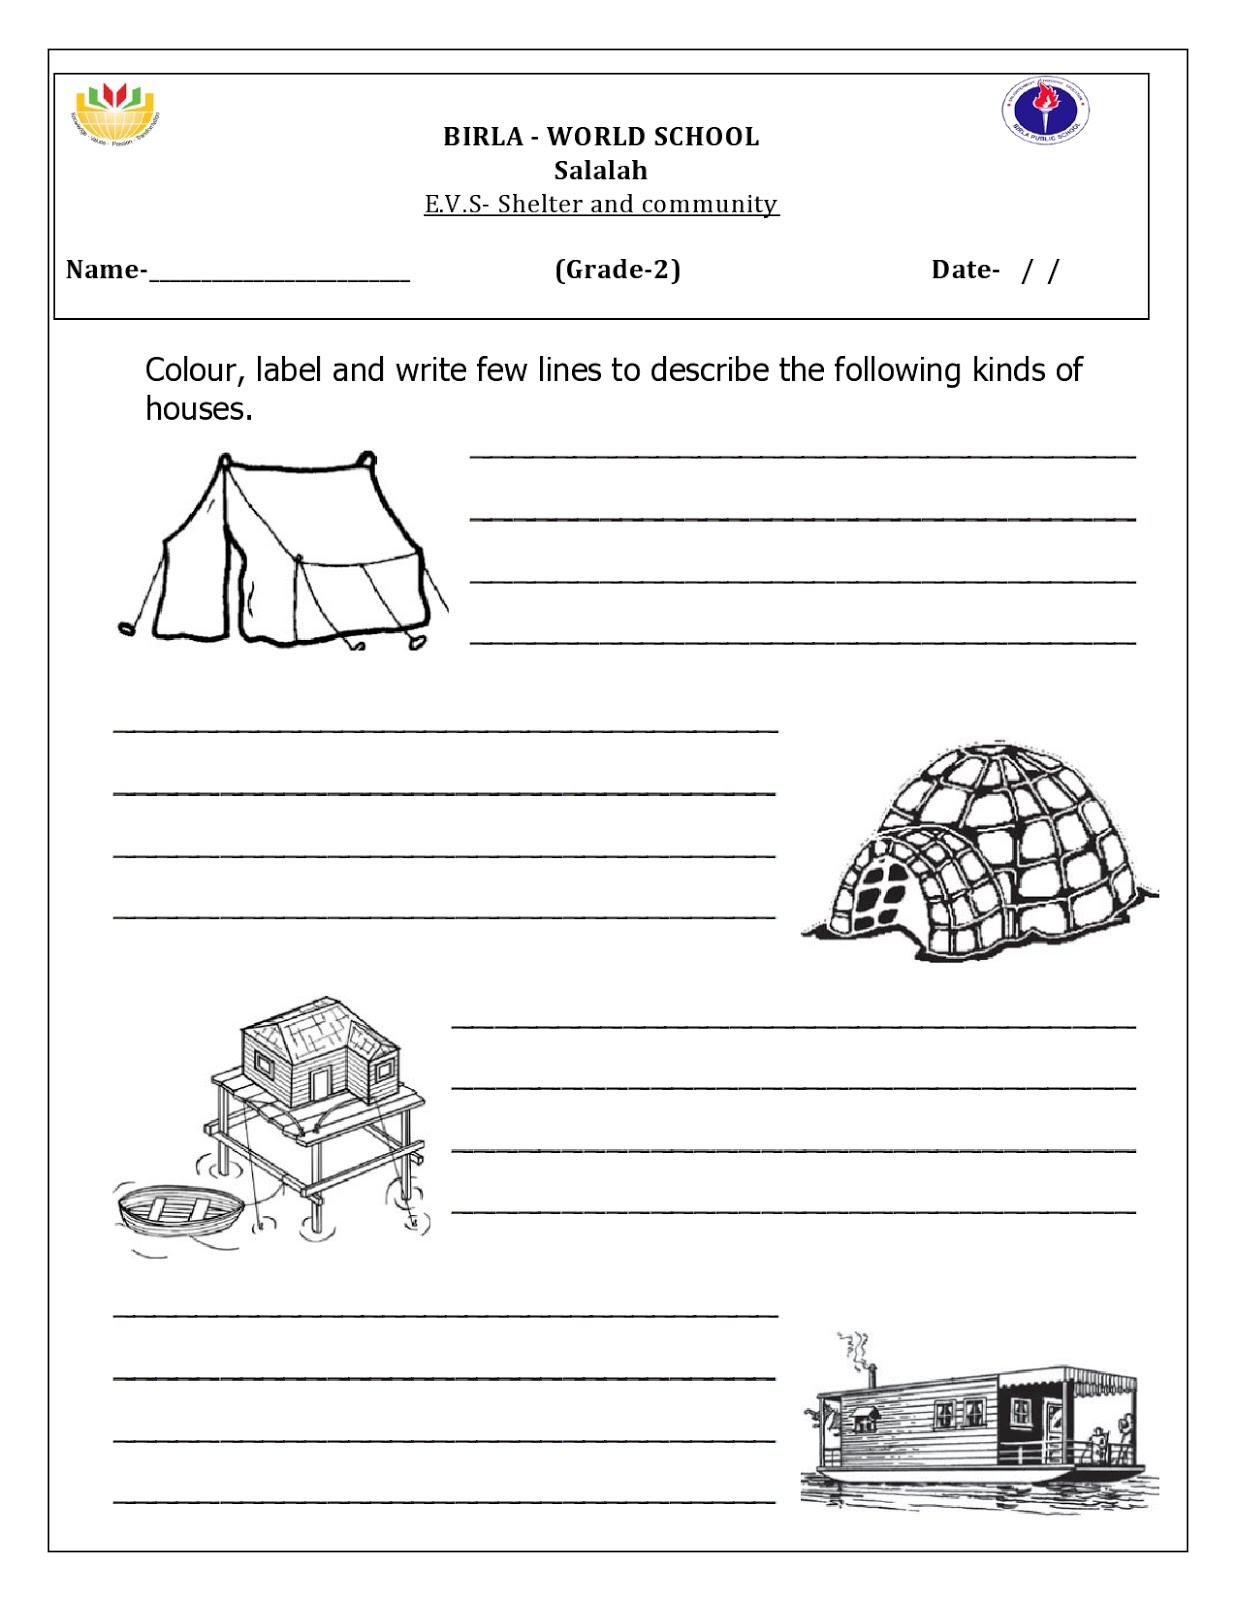 Birla World School Oman Homework For Grade 2b On 14 1 16